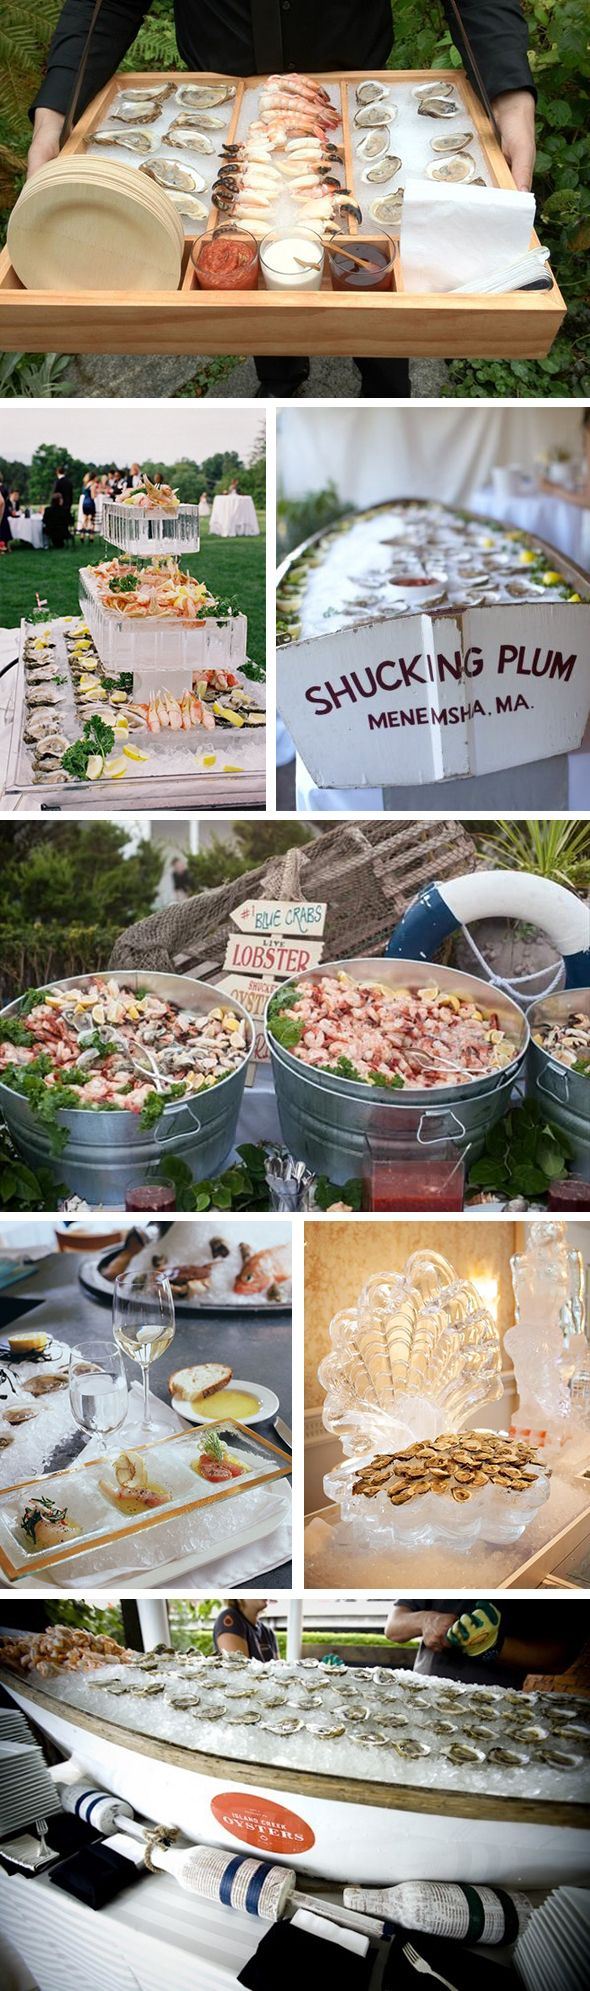 Destination Wedding? Raw Bar Idea!